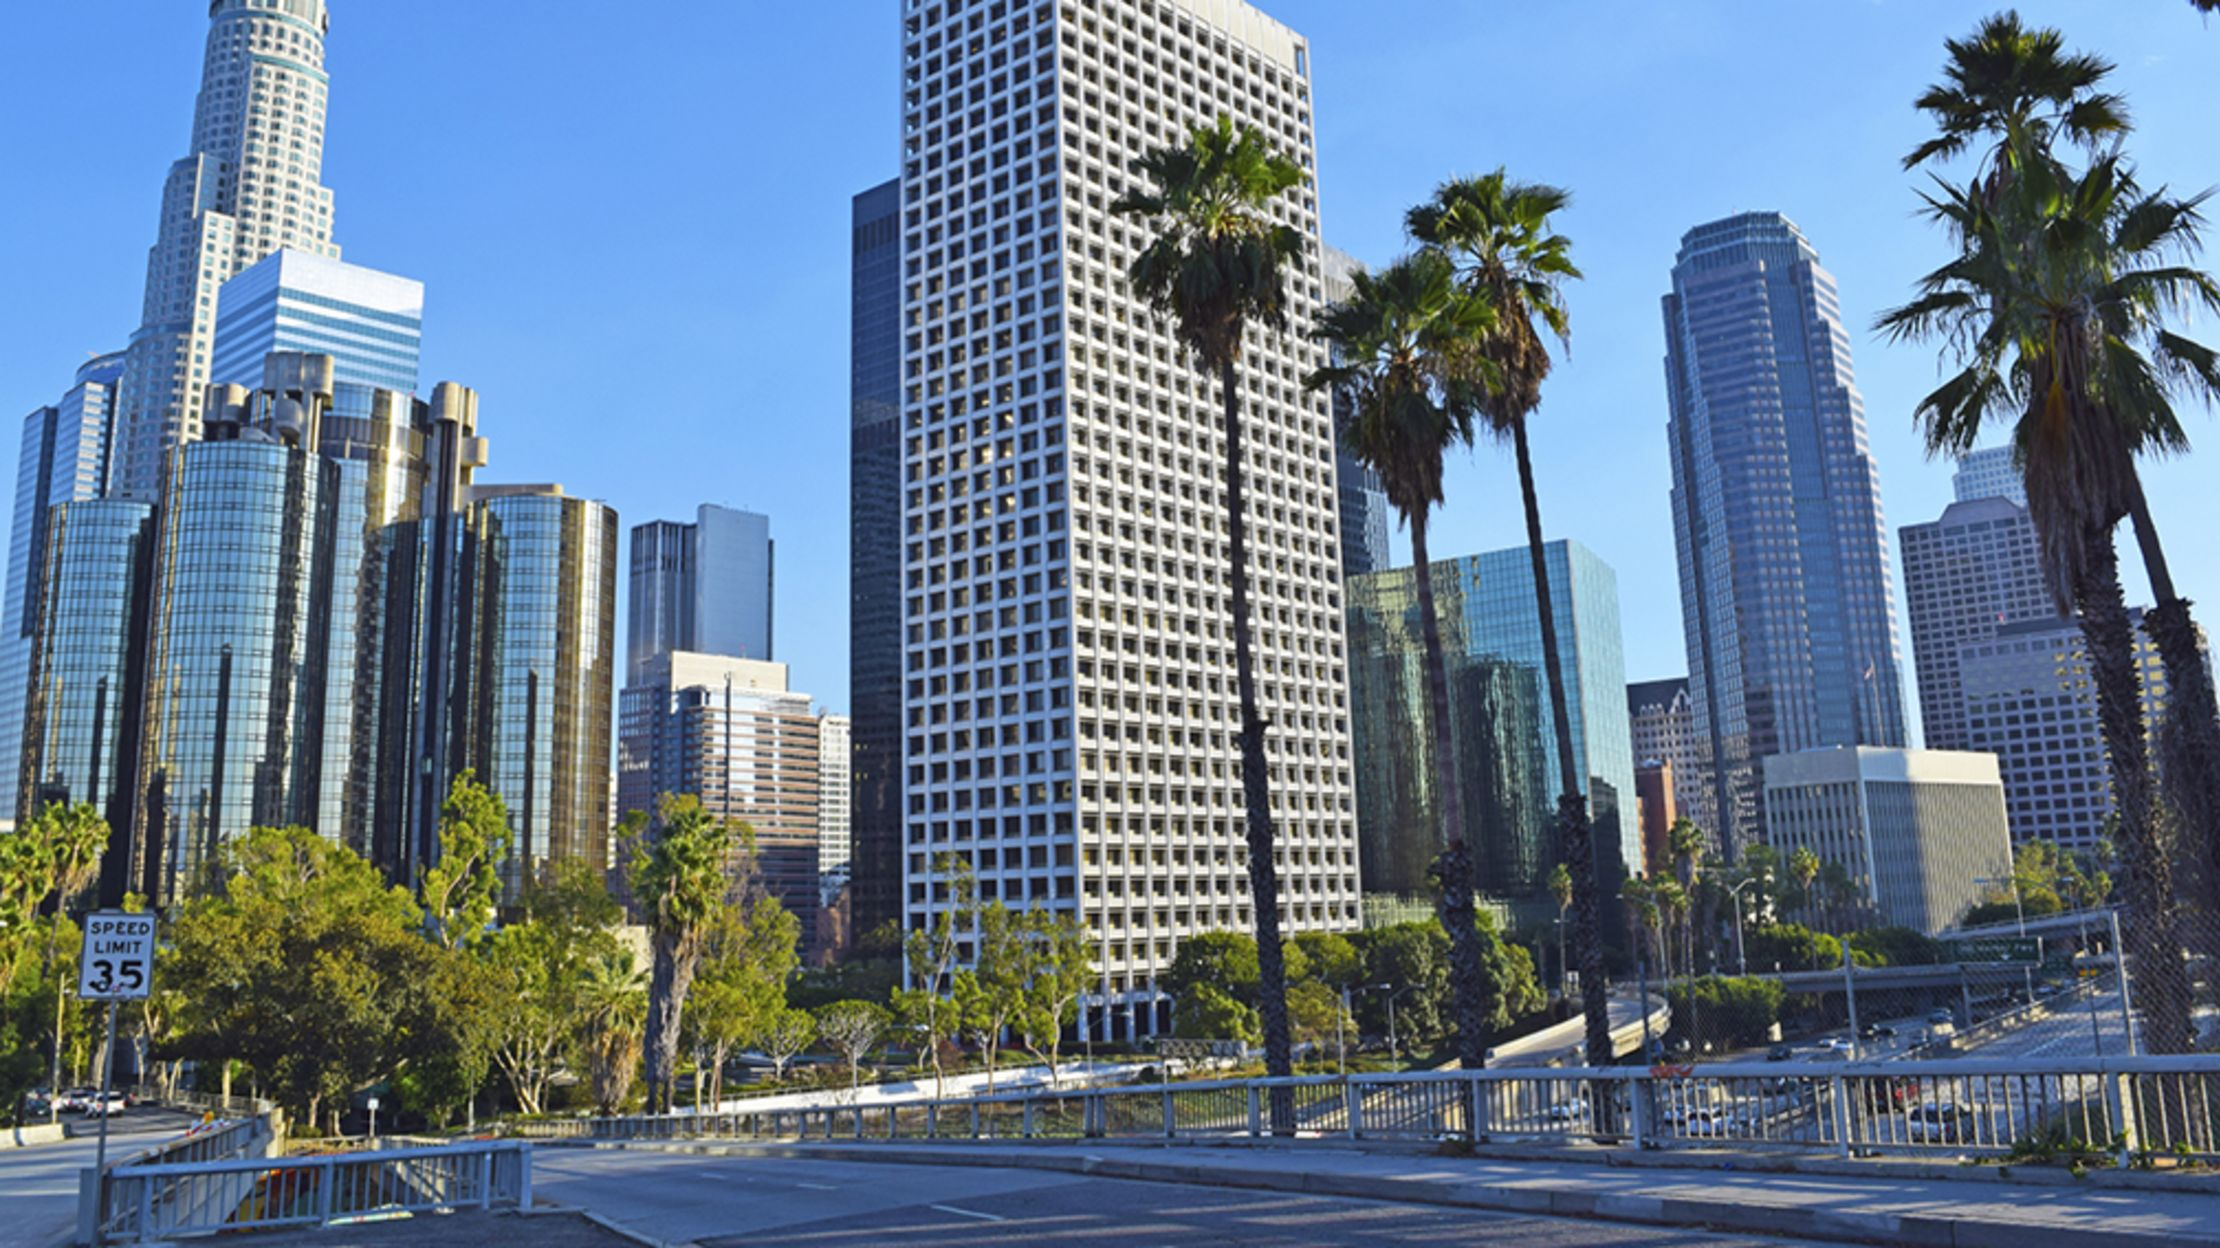 25 Things You Might Not Know About Los Angeles Mental Floss